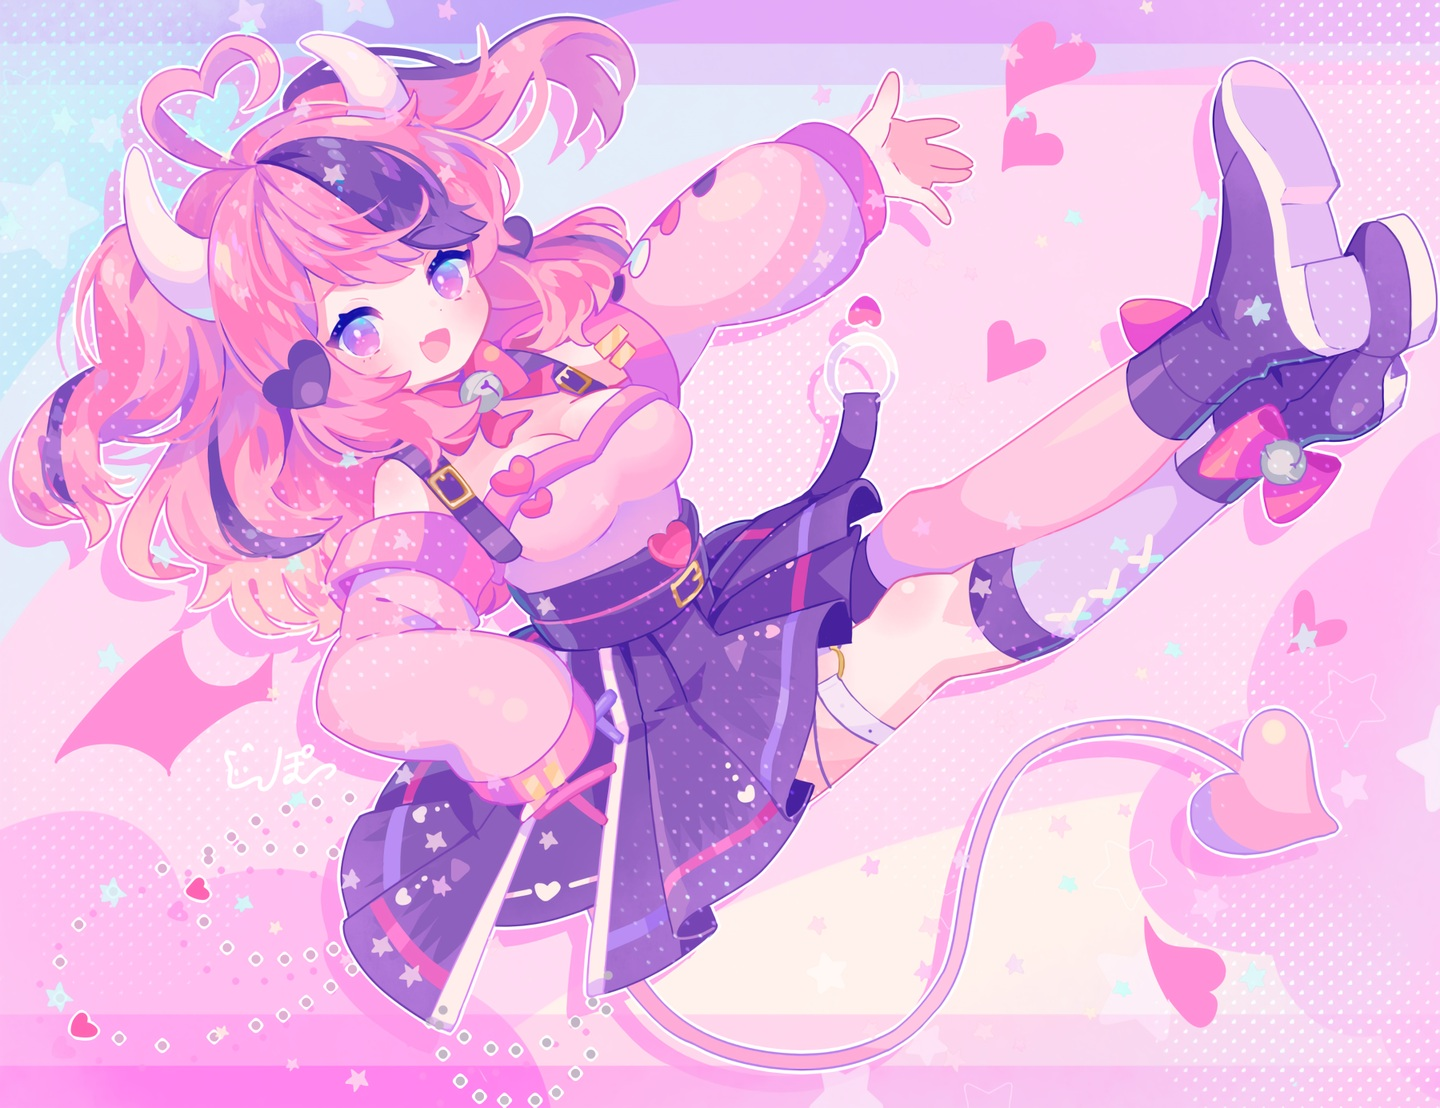 bell boots bow breasts cleavage fang garter heart horns ironmouse komusun loli pink pink_eyes pink_hair polychromatic short_hair signed skirt tail twintails vshojo waifu2x